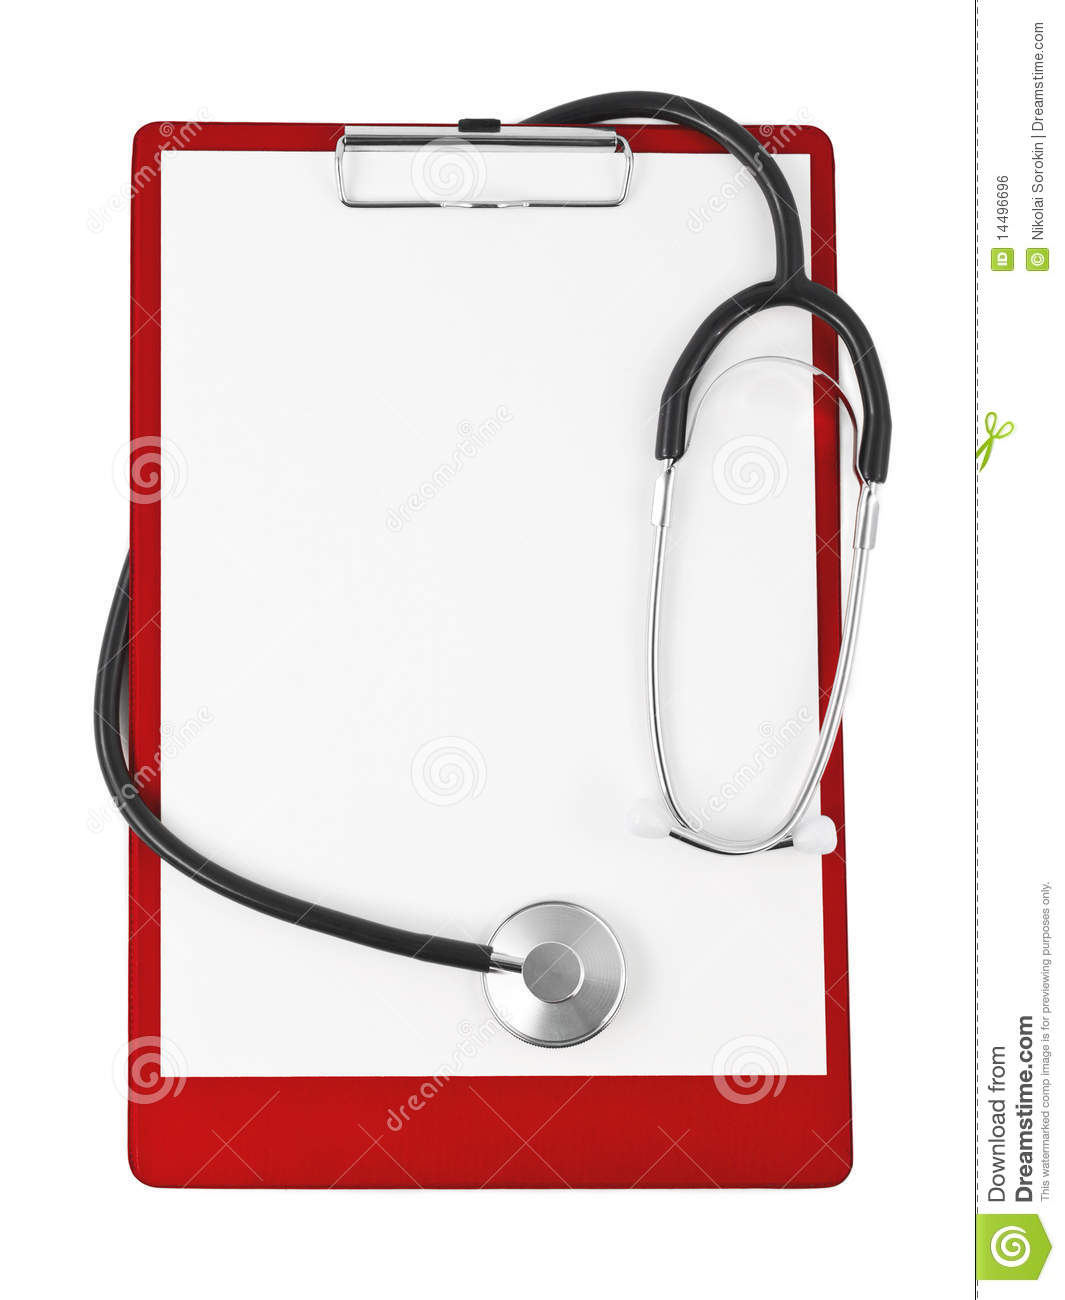 Medical Page Borders - ClipArt Best